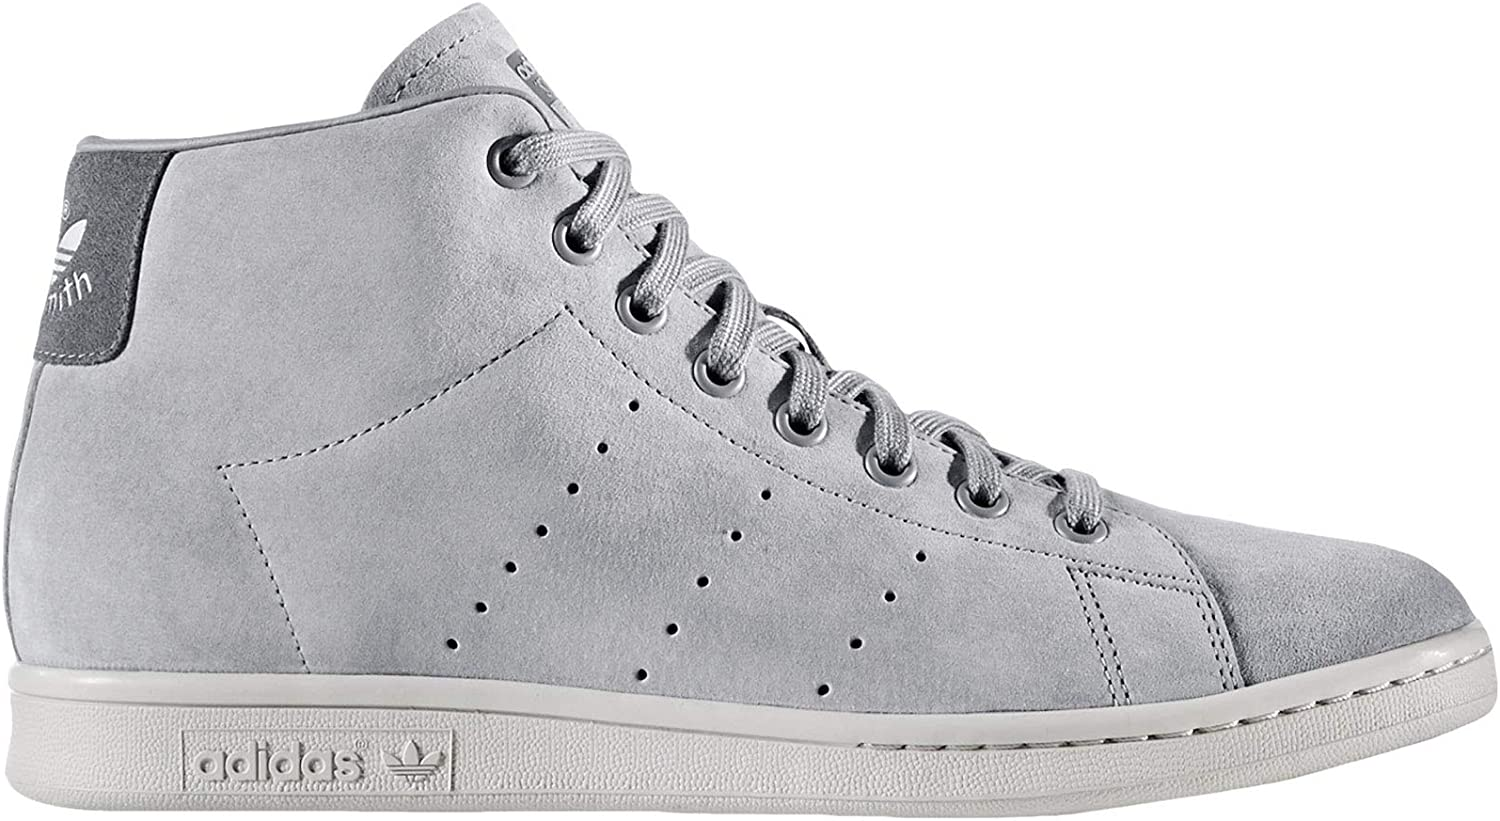 Adidas Unisex Adults' Stan Smith Mid Fitness shoes